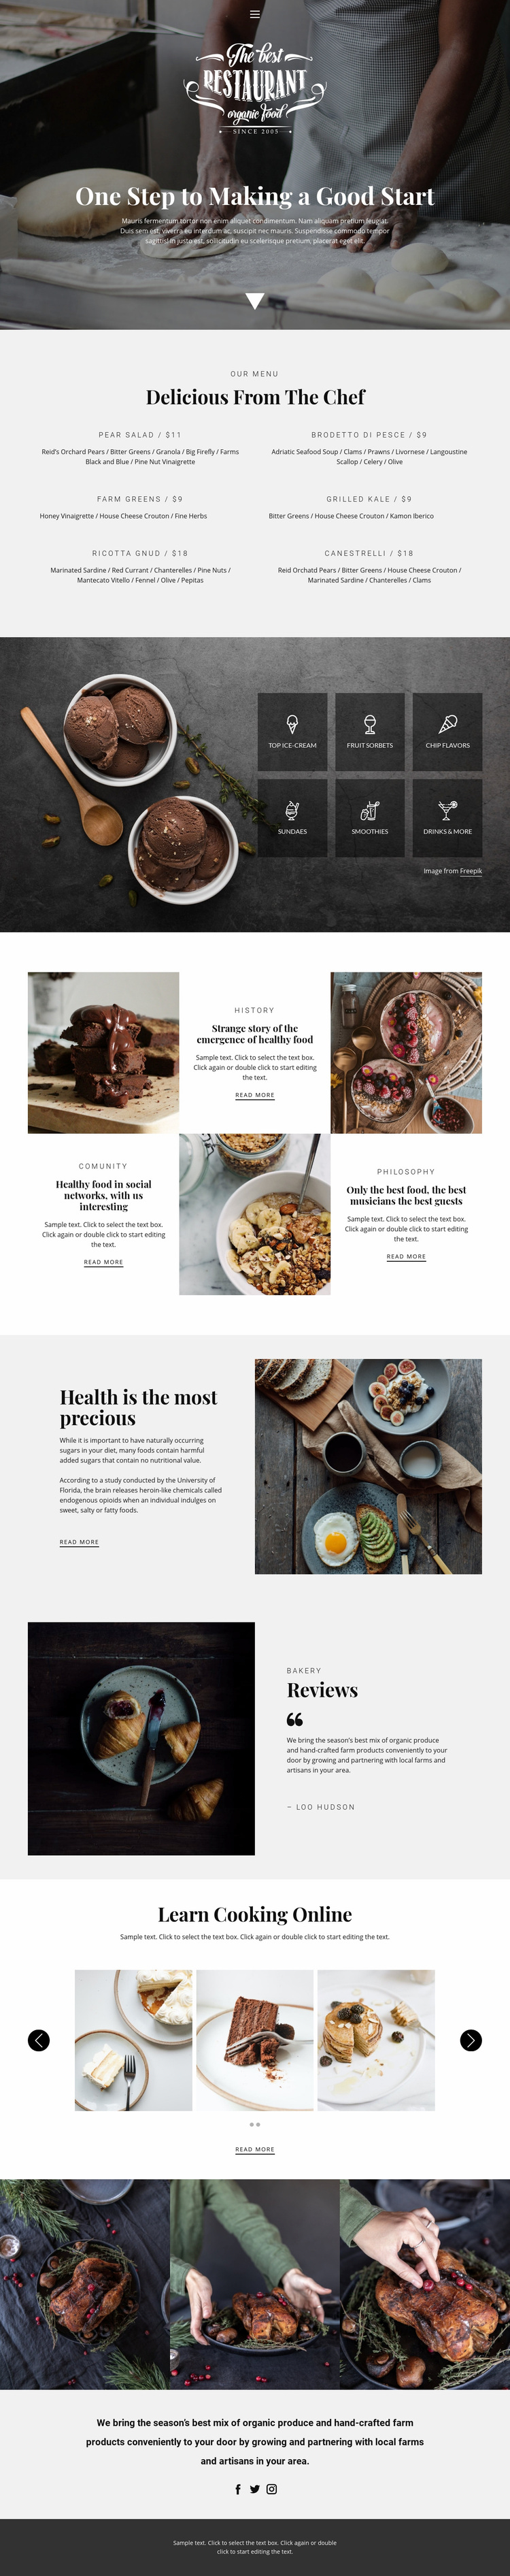 Recipes and cook lessons Web Page Designer